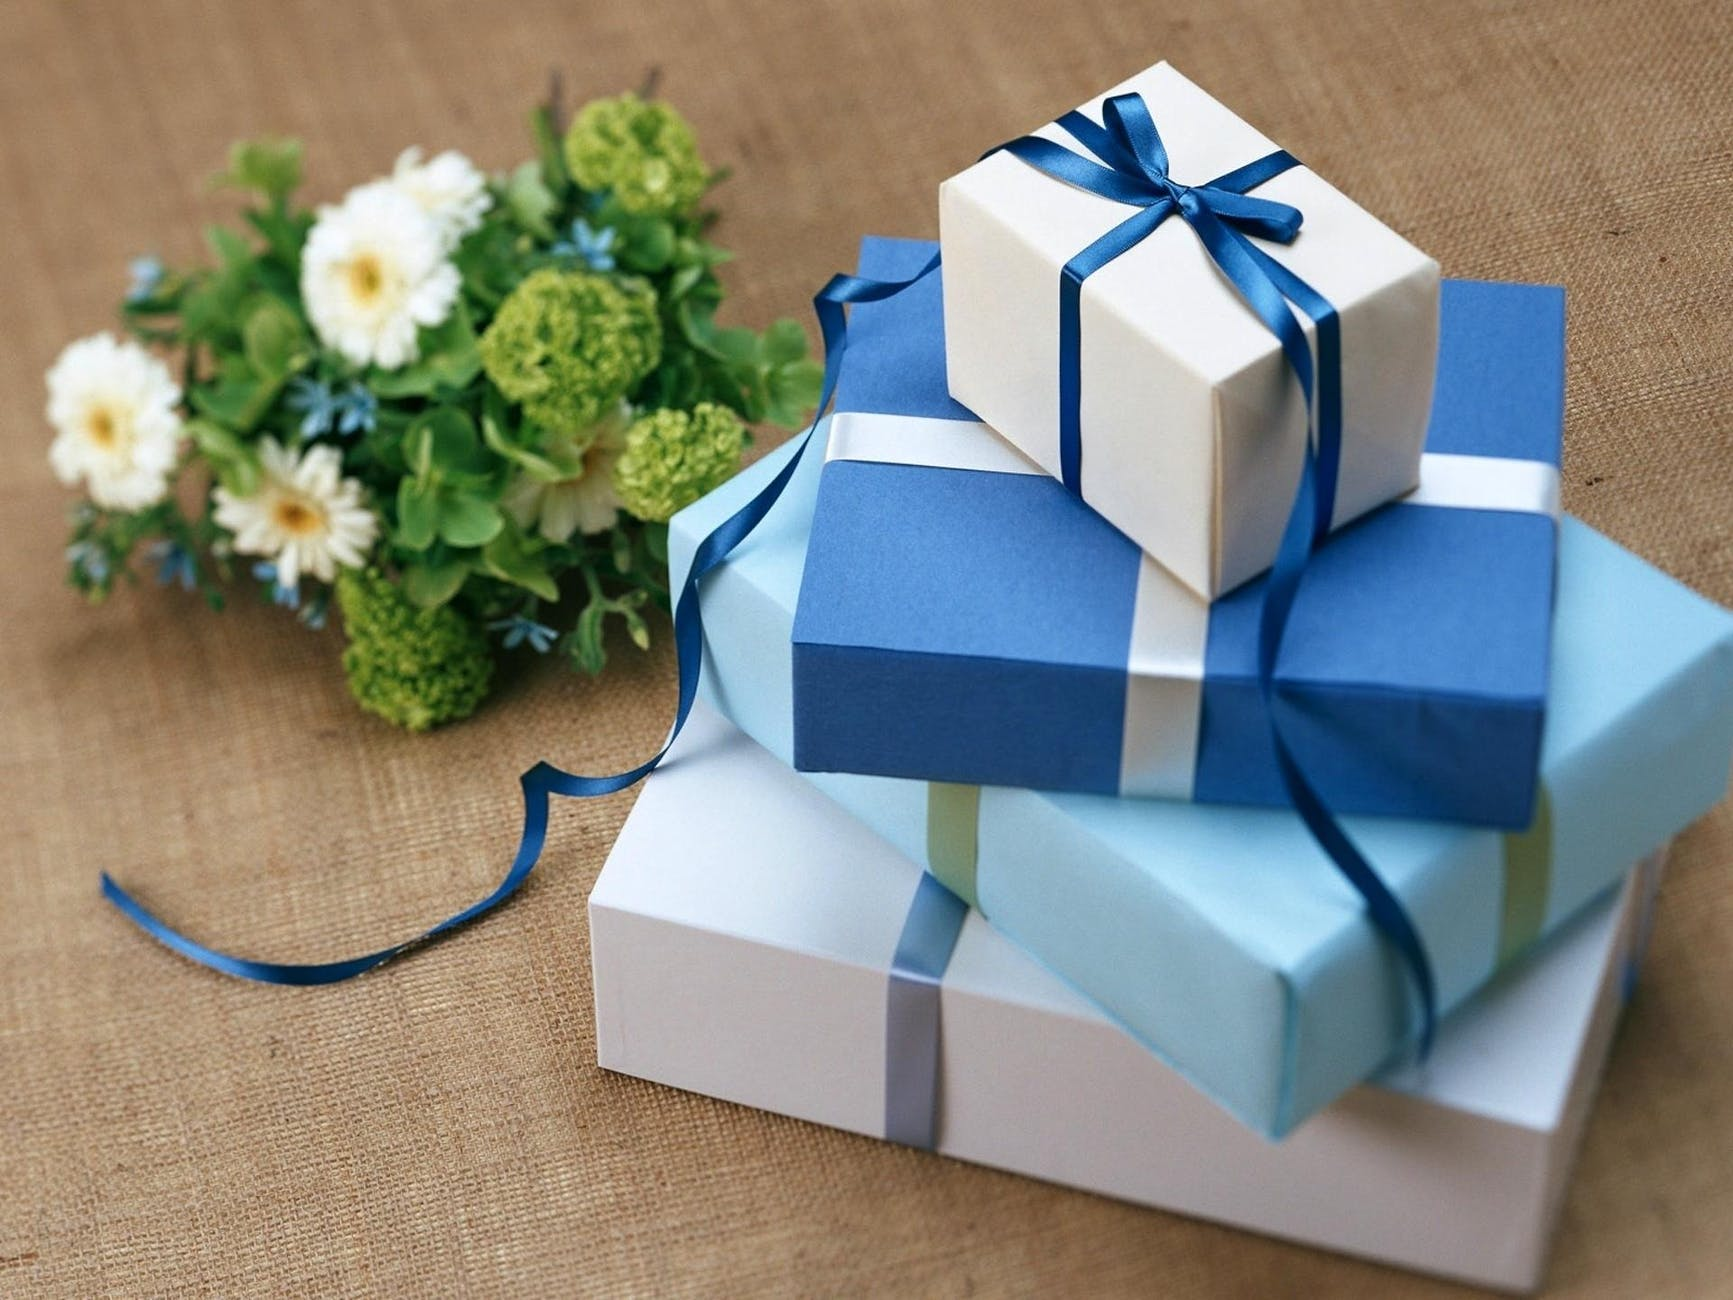 Attractive Gifts that Make A Fantastic Gesture for the Birthday Person